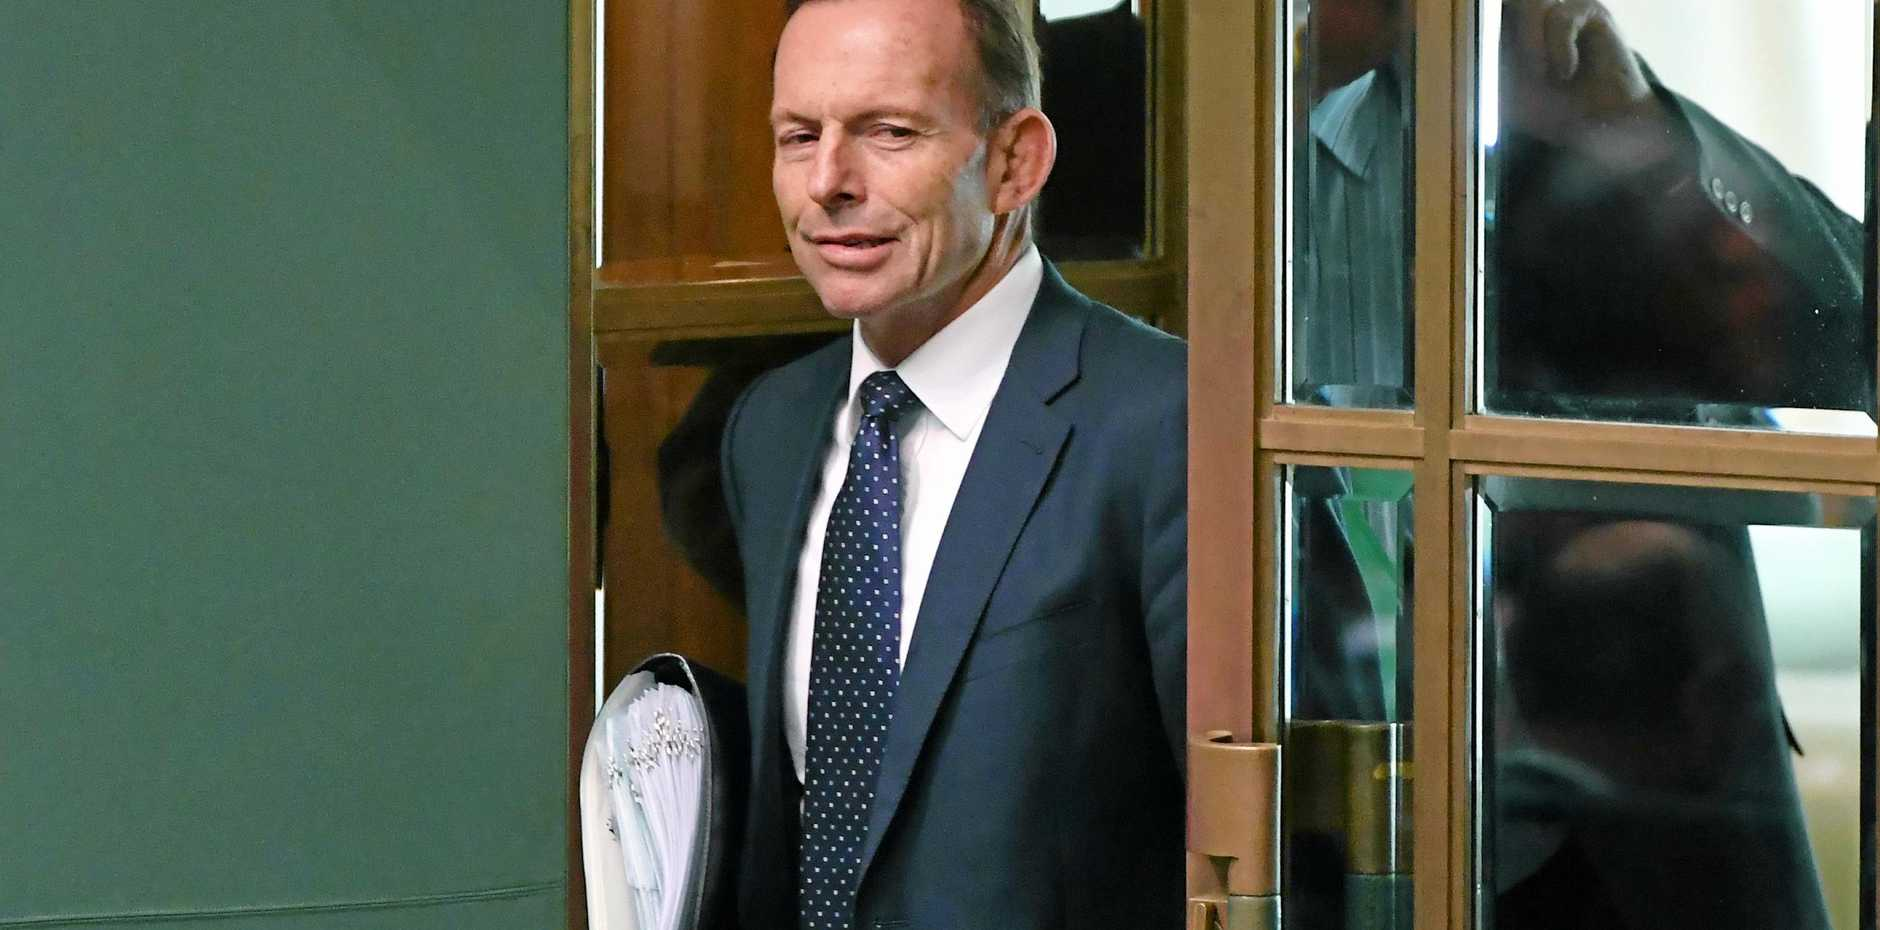 Tony Abbott arrives for Question Time in Parliament.